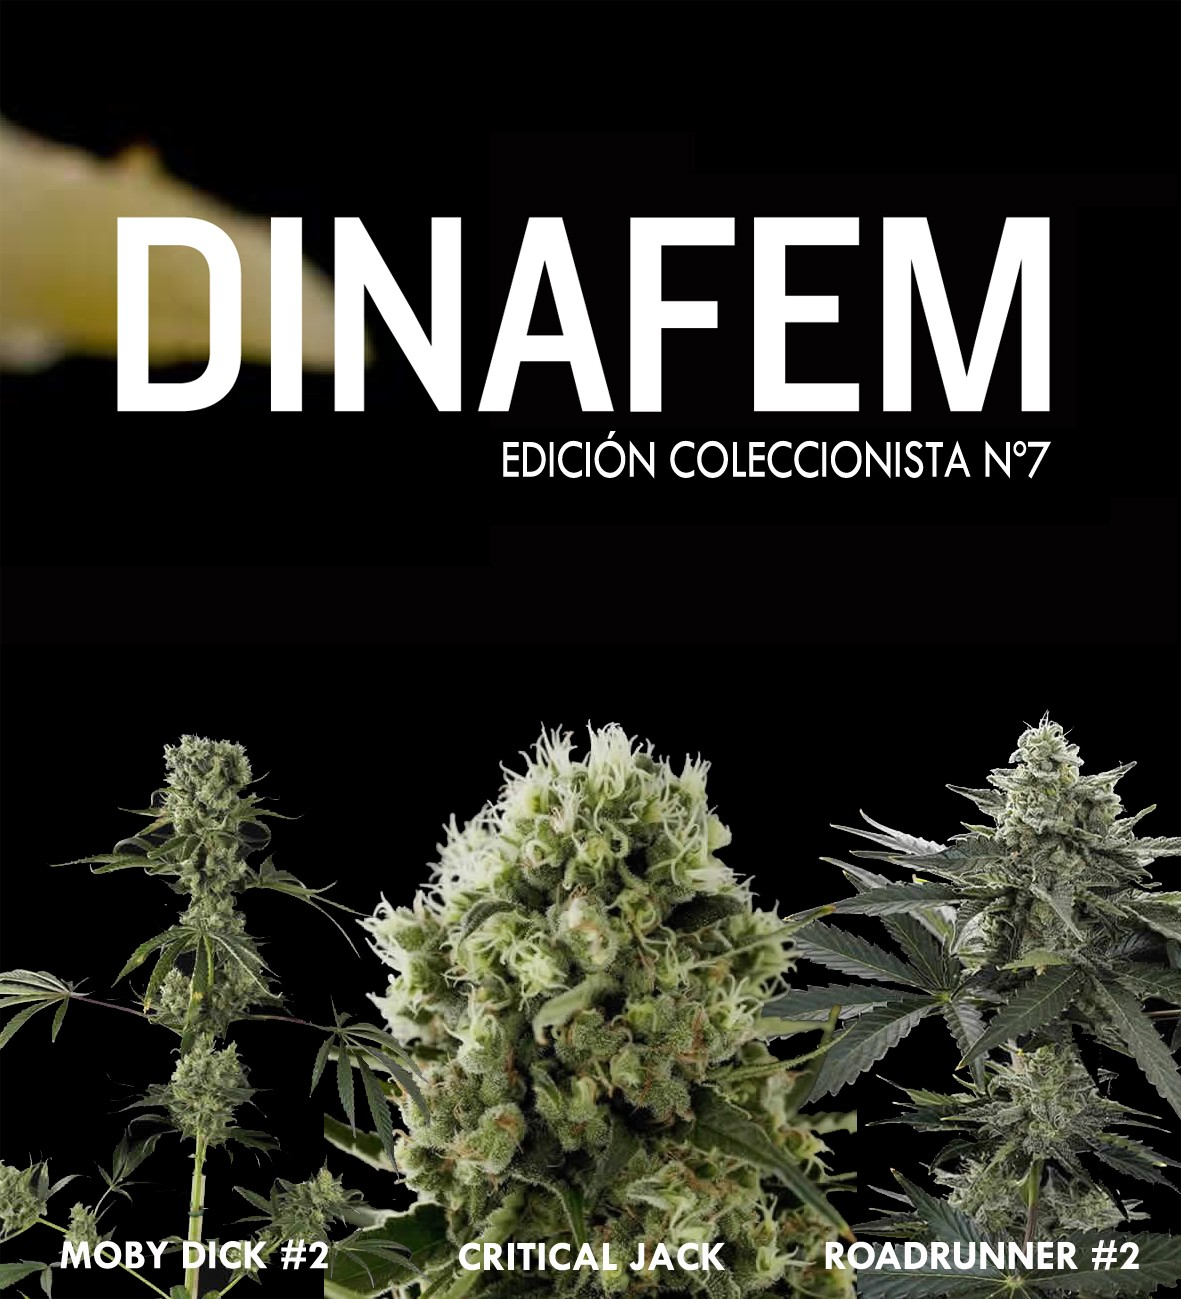 Dinafem collector #7 6 seeds